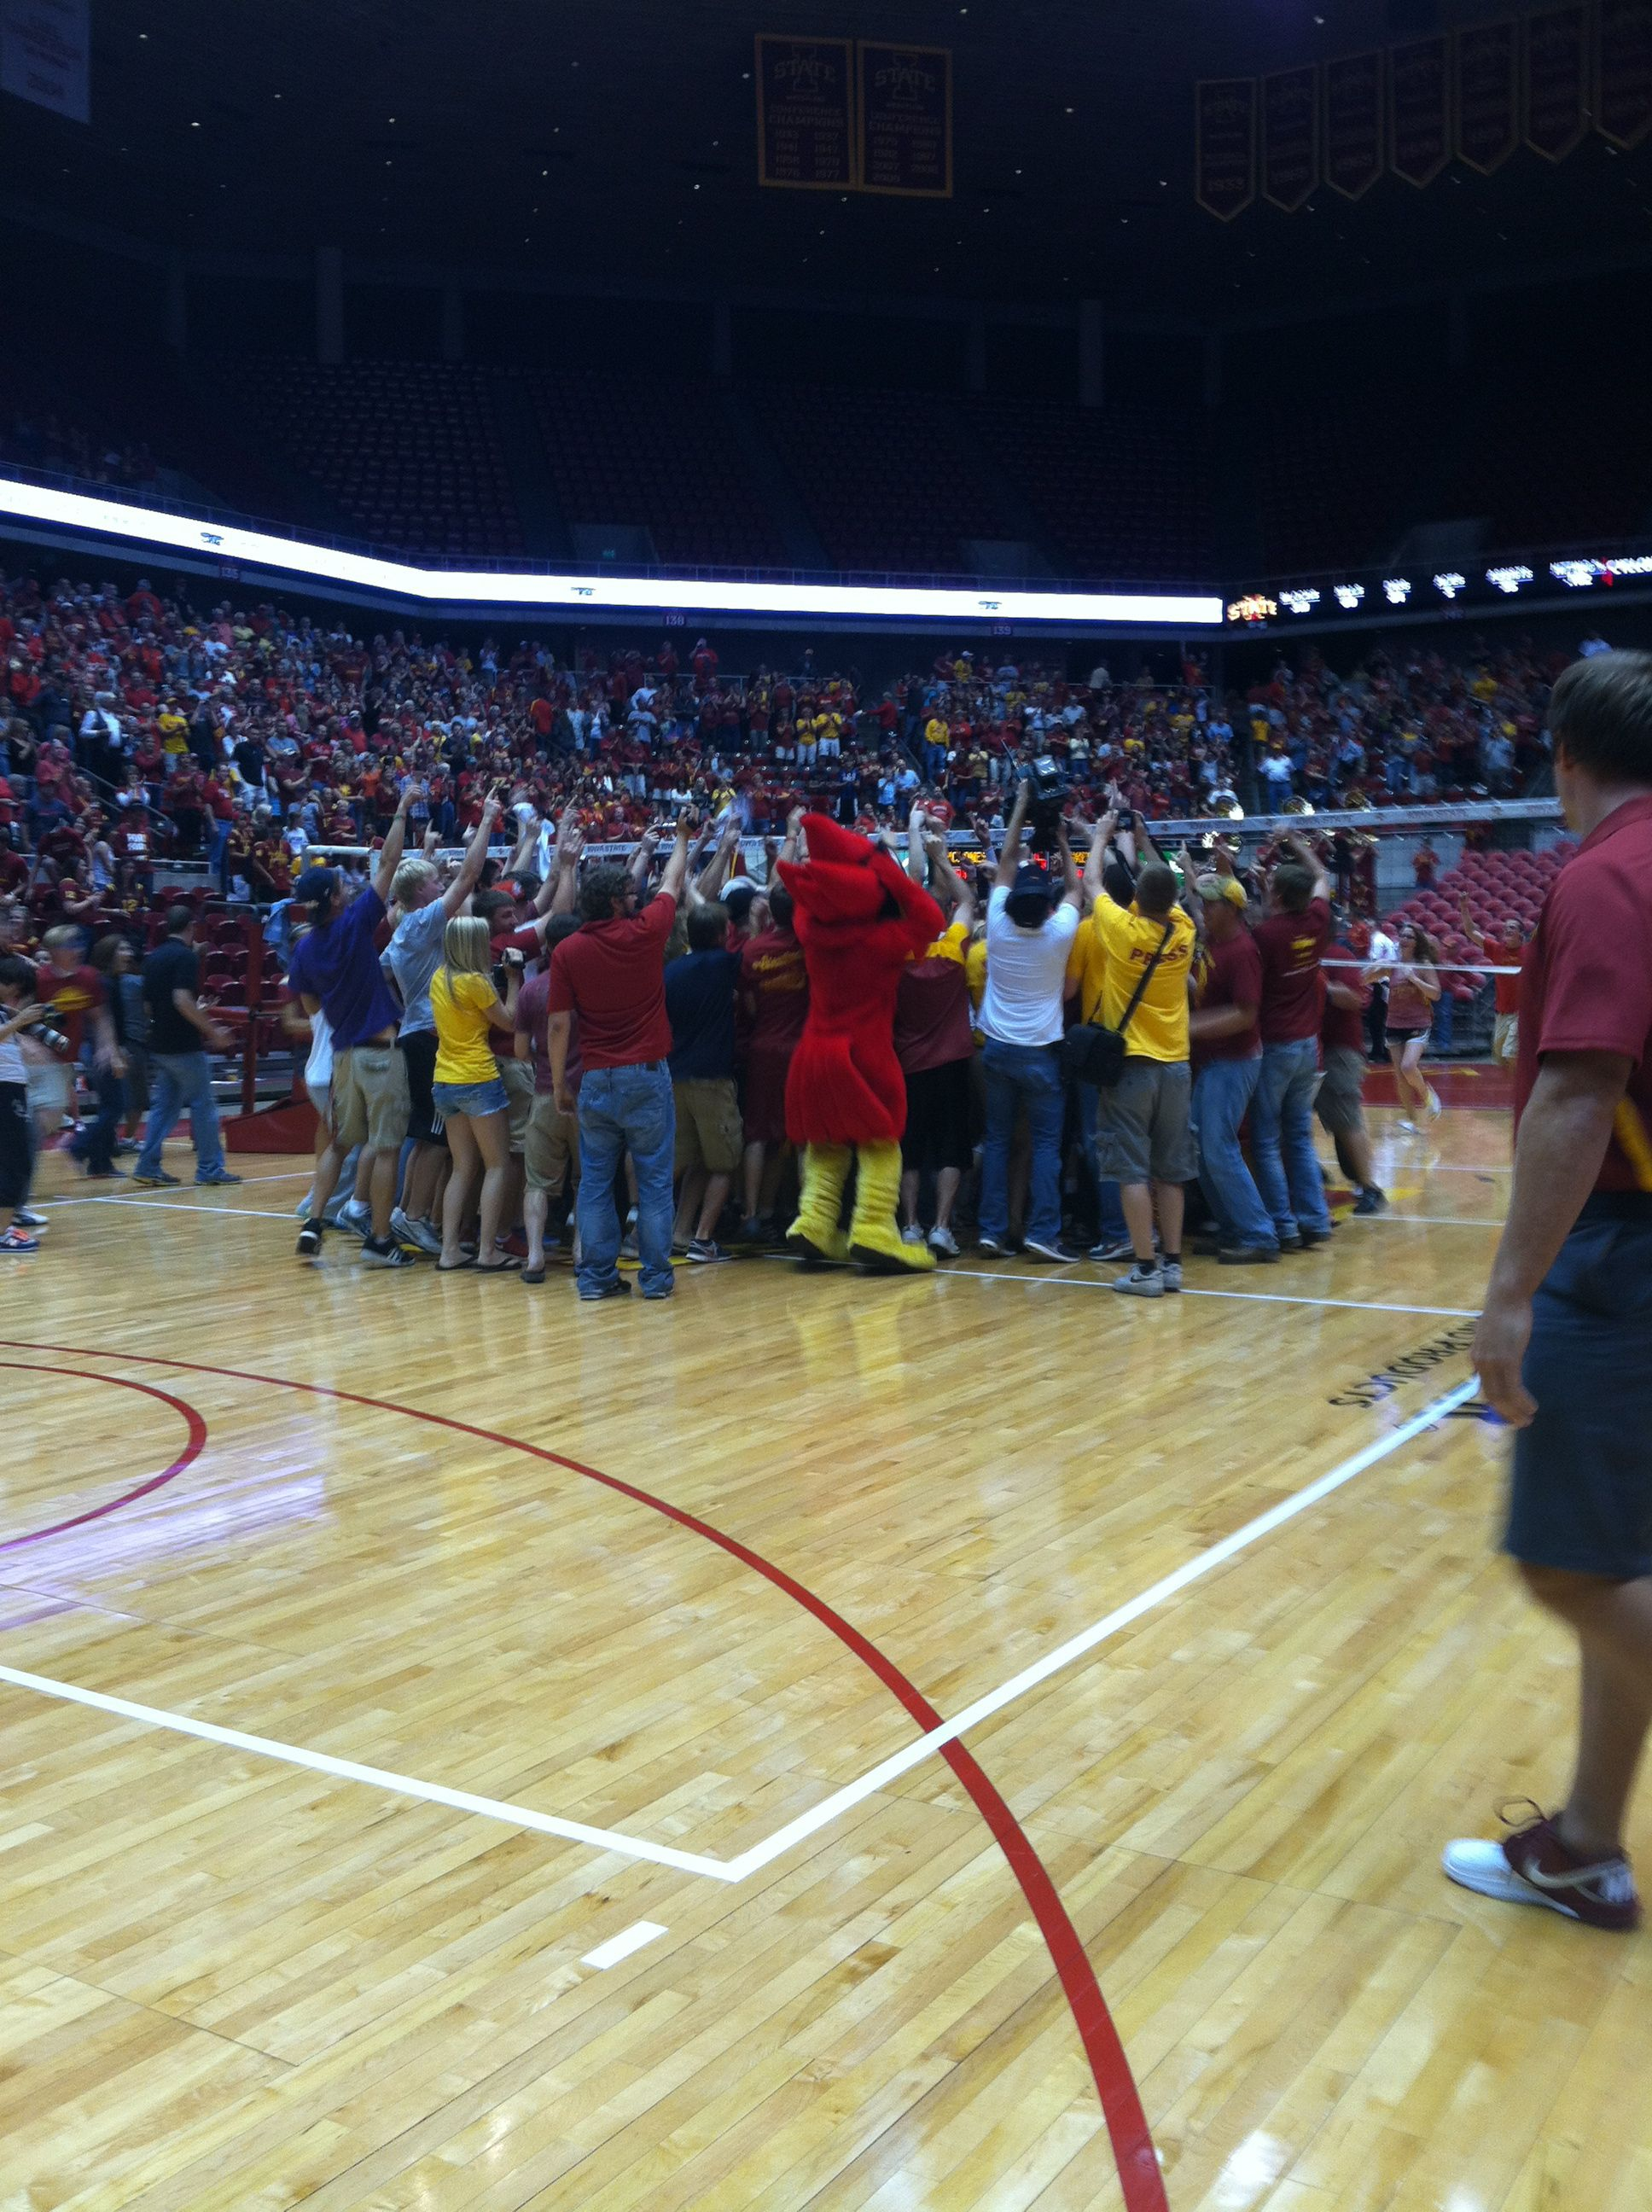 Fans Rush The Court After The Cyclone Volleyball Team Defeats 1 Nebraska 3 1 On September 15 2012 Iowa State Cyclones Iowa State Cyclone